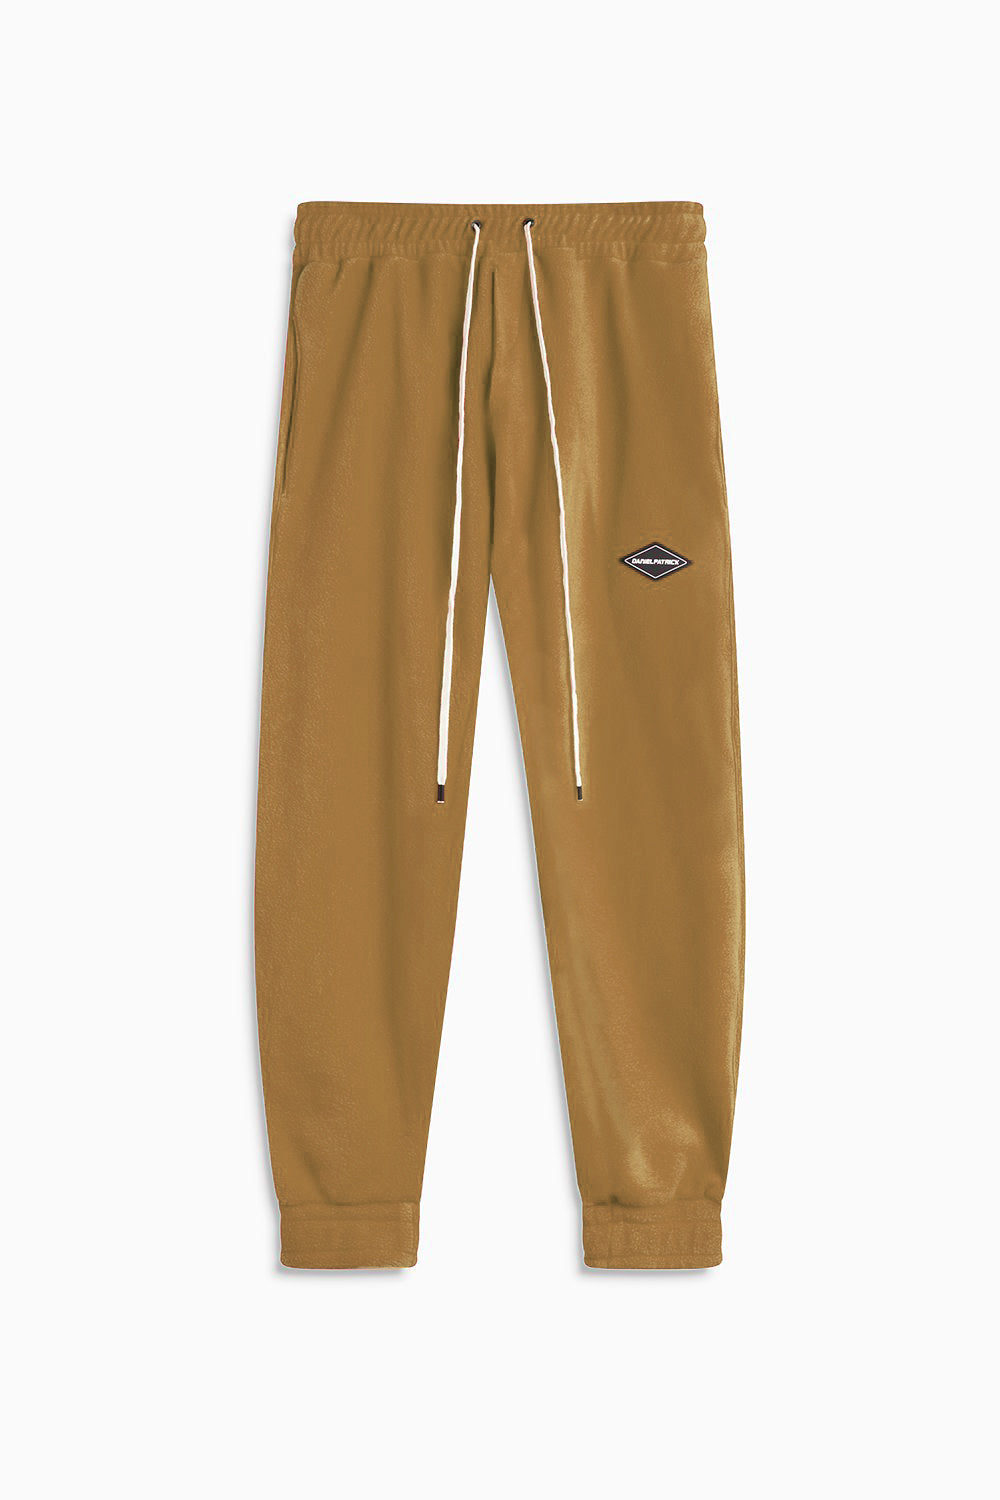 polar fleece roaming sweatpants / mojave